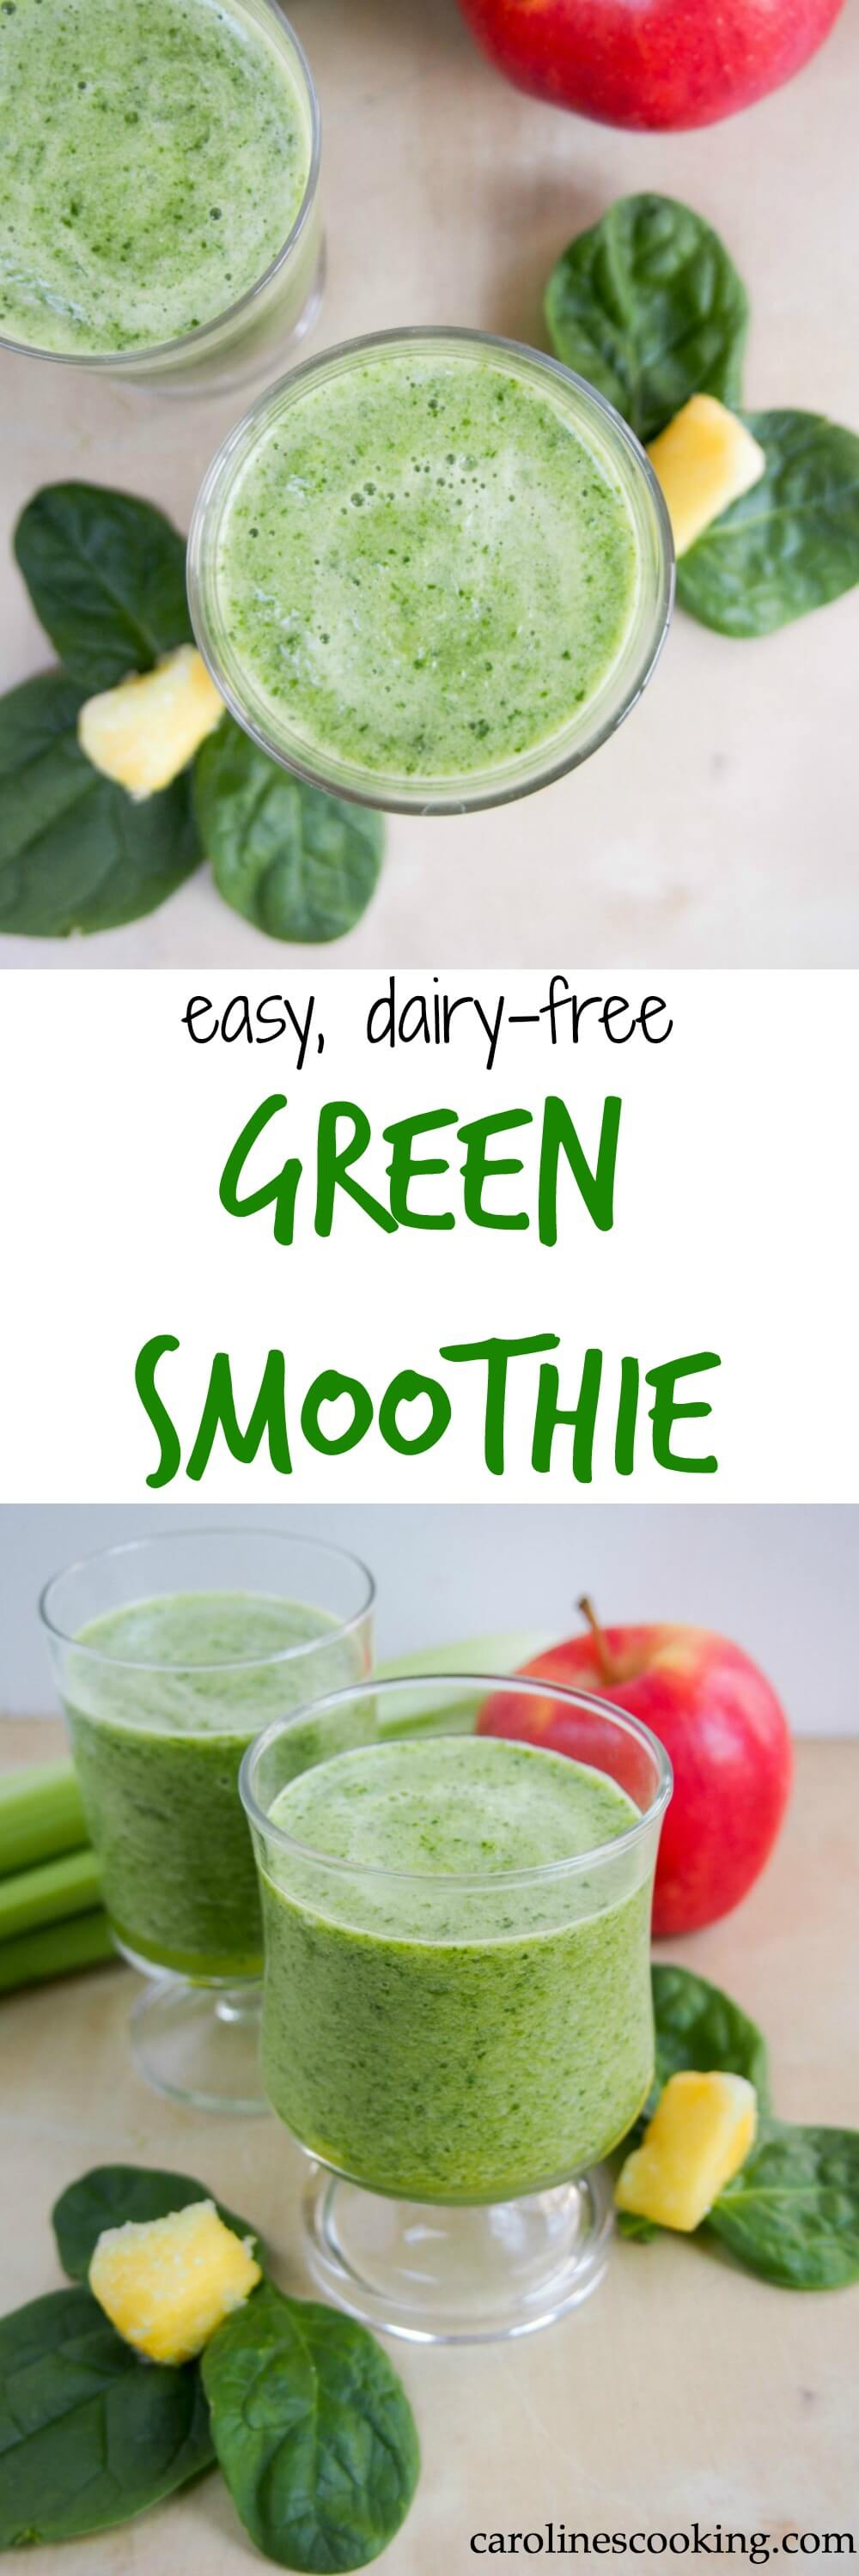 easy dairy-free green smoothie - This green smoothie is incredibly easy, tasty and completely dairy-free. It's sweet enough to enjoy easily, no added sugar but lots of green goodness.